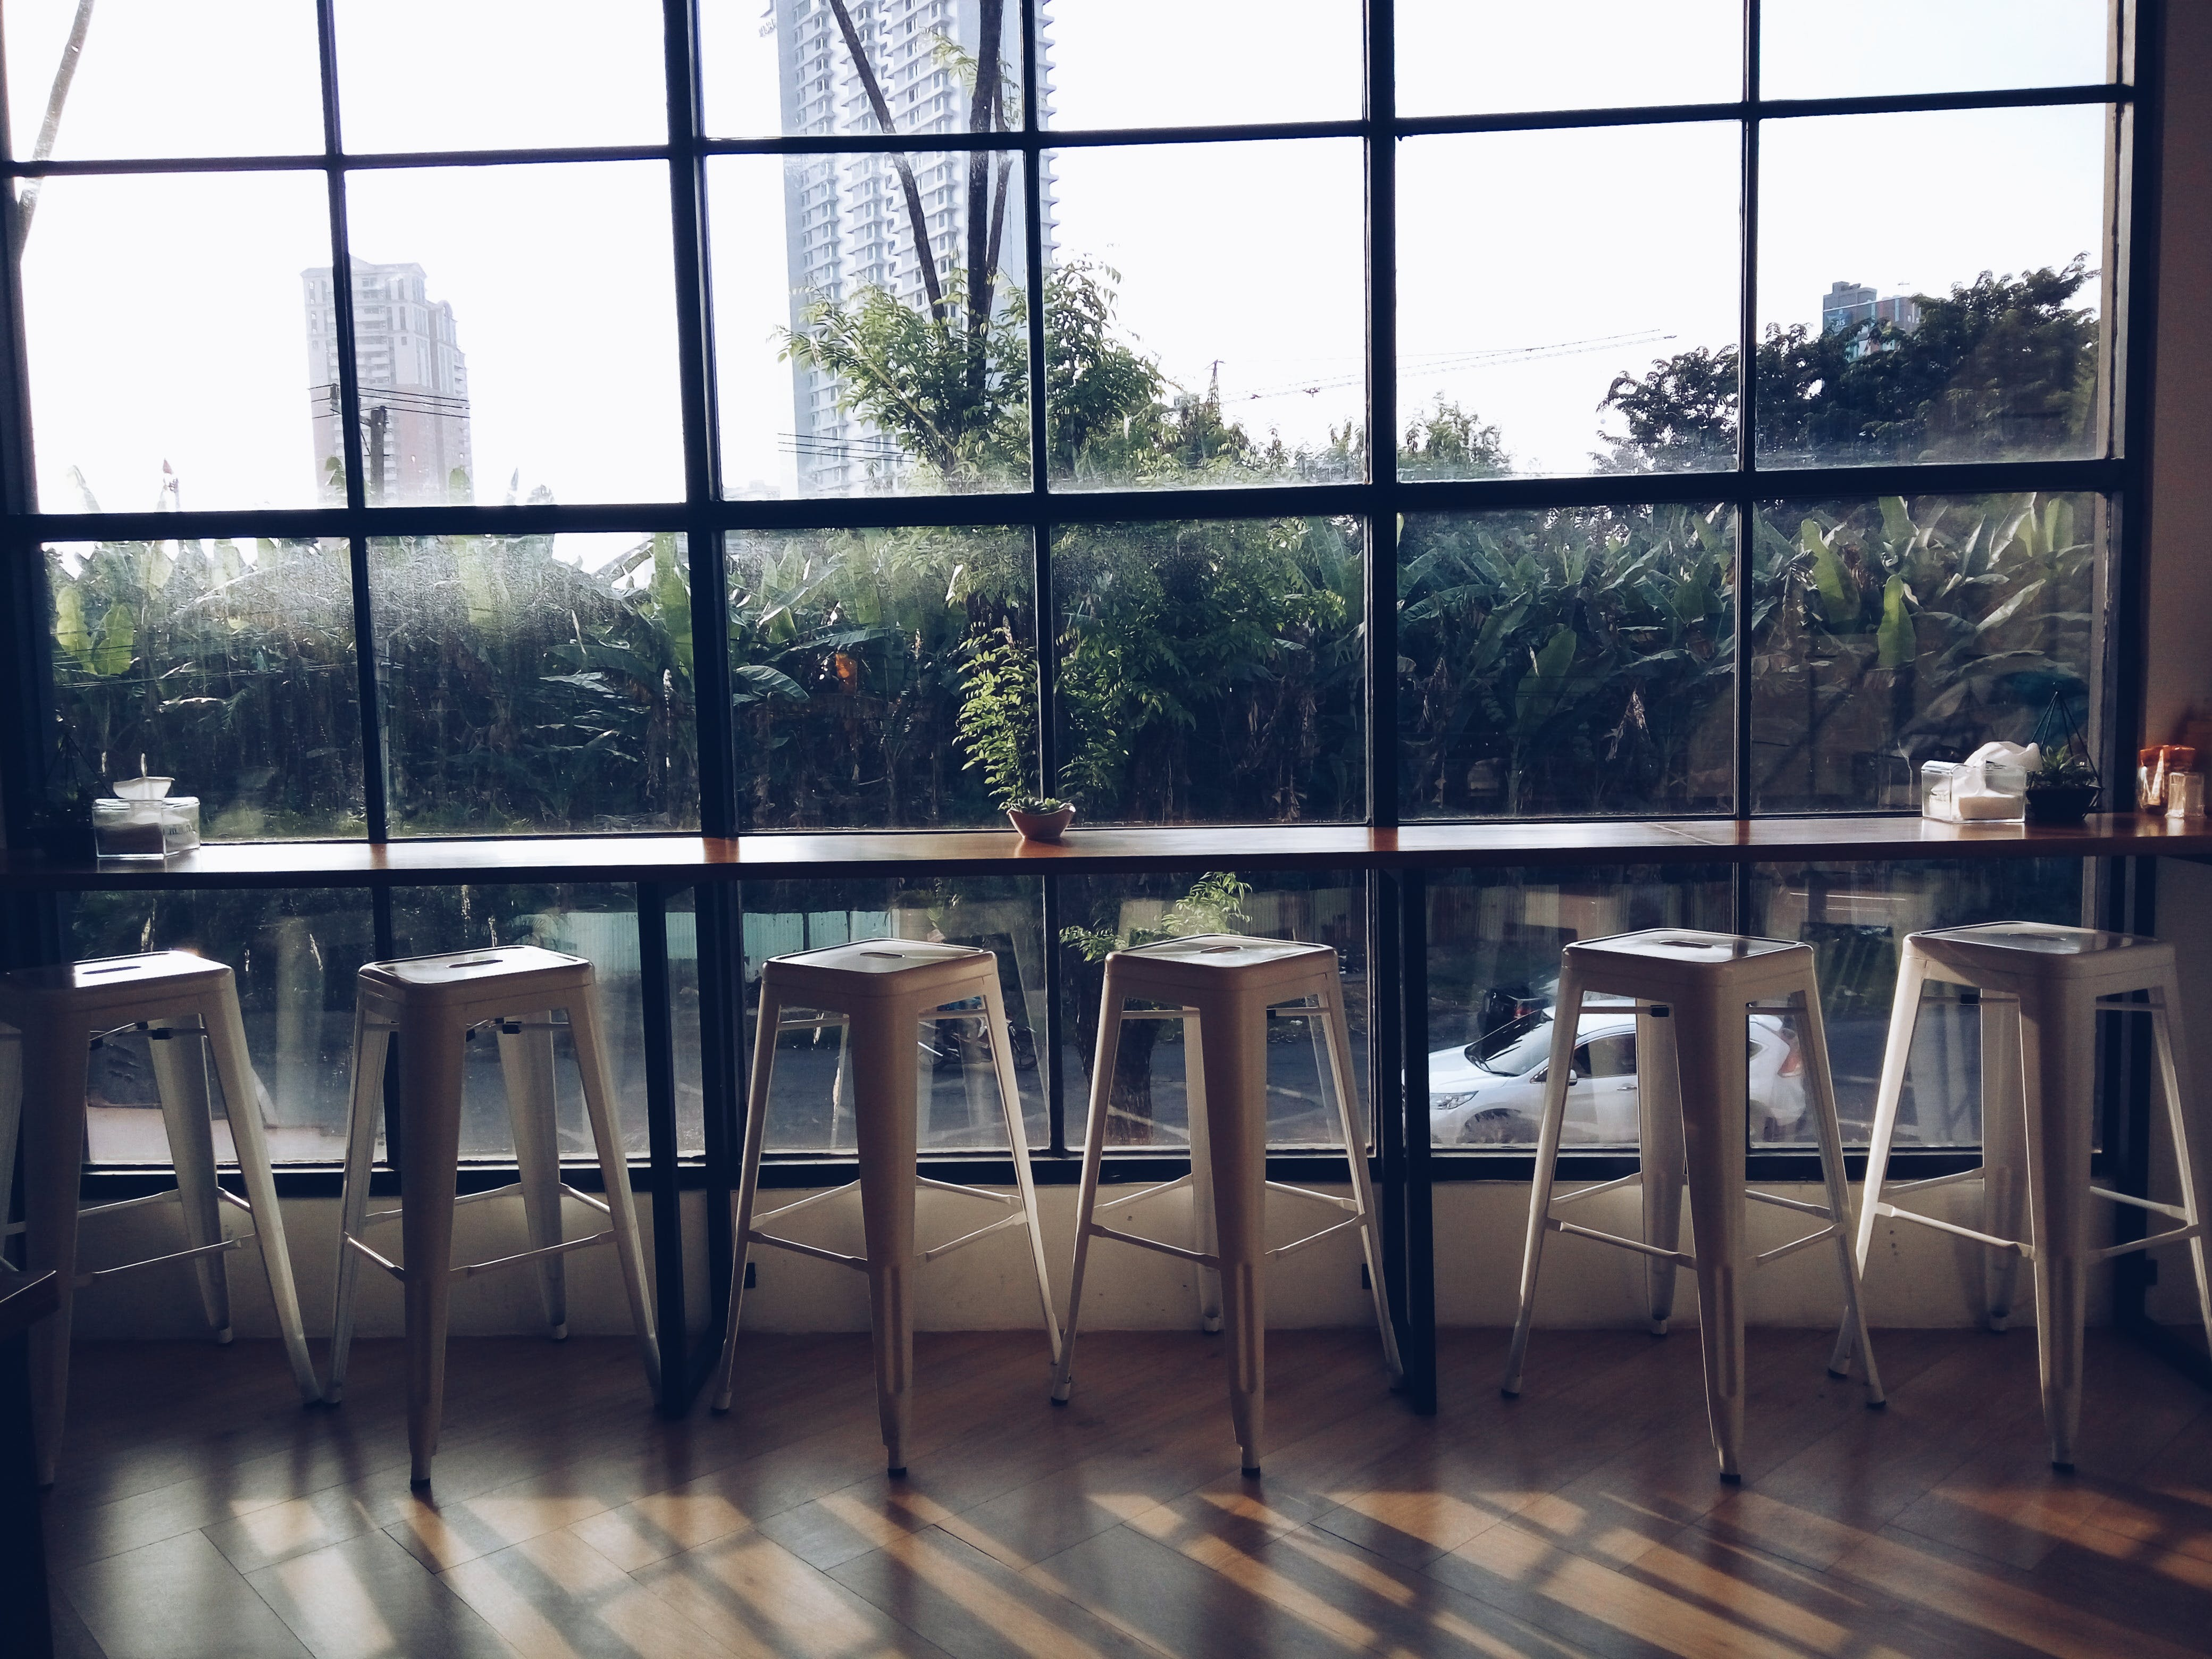 Free stock photo of #cafe #chair #ambience #indoor #interior #room